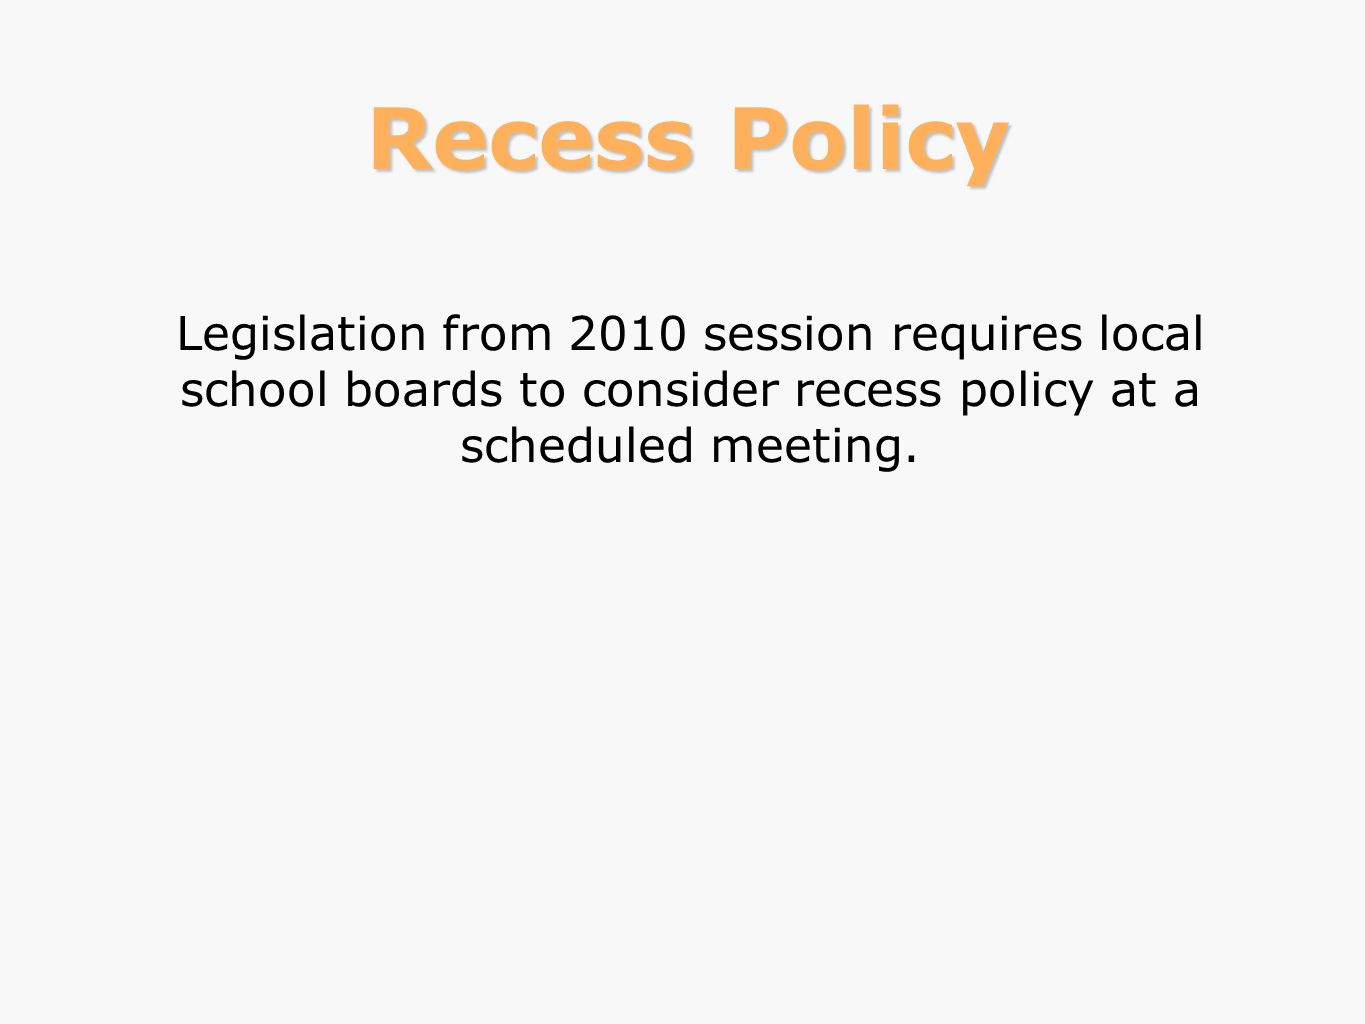 Recess Policy Legislation from 2010 session requires local school boards to consider recess policy at a scheduled meeting.